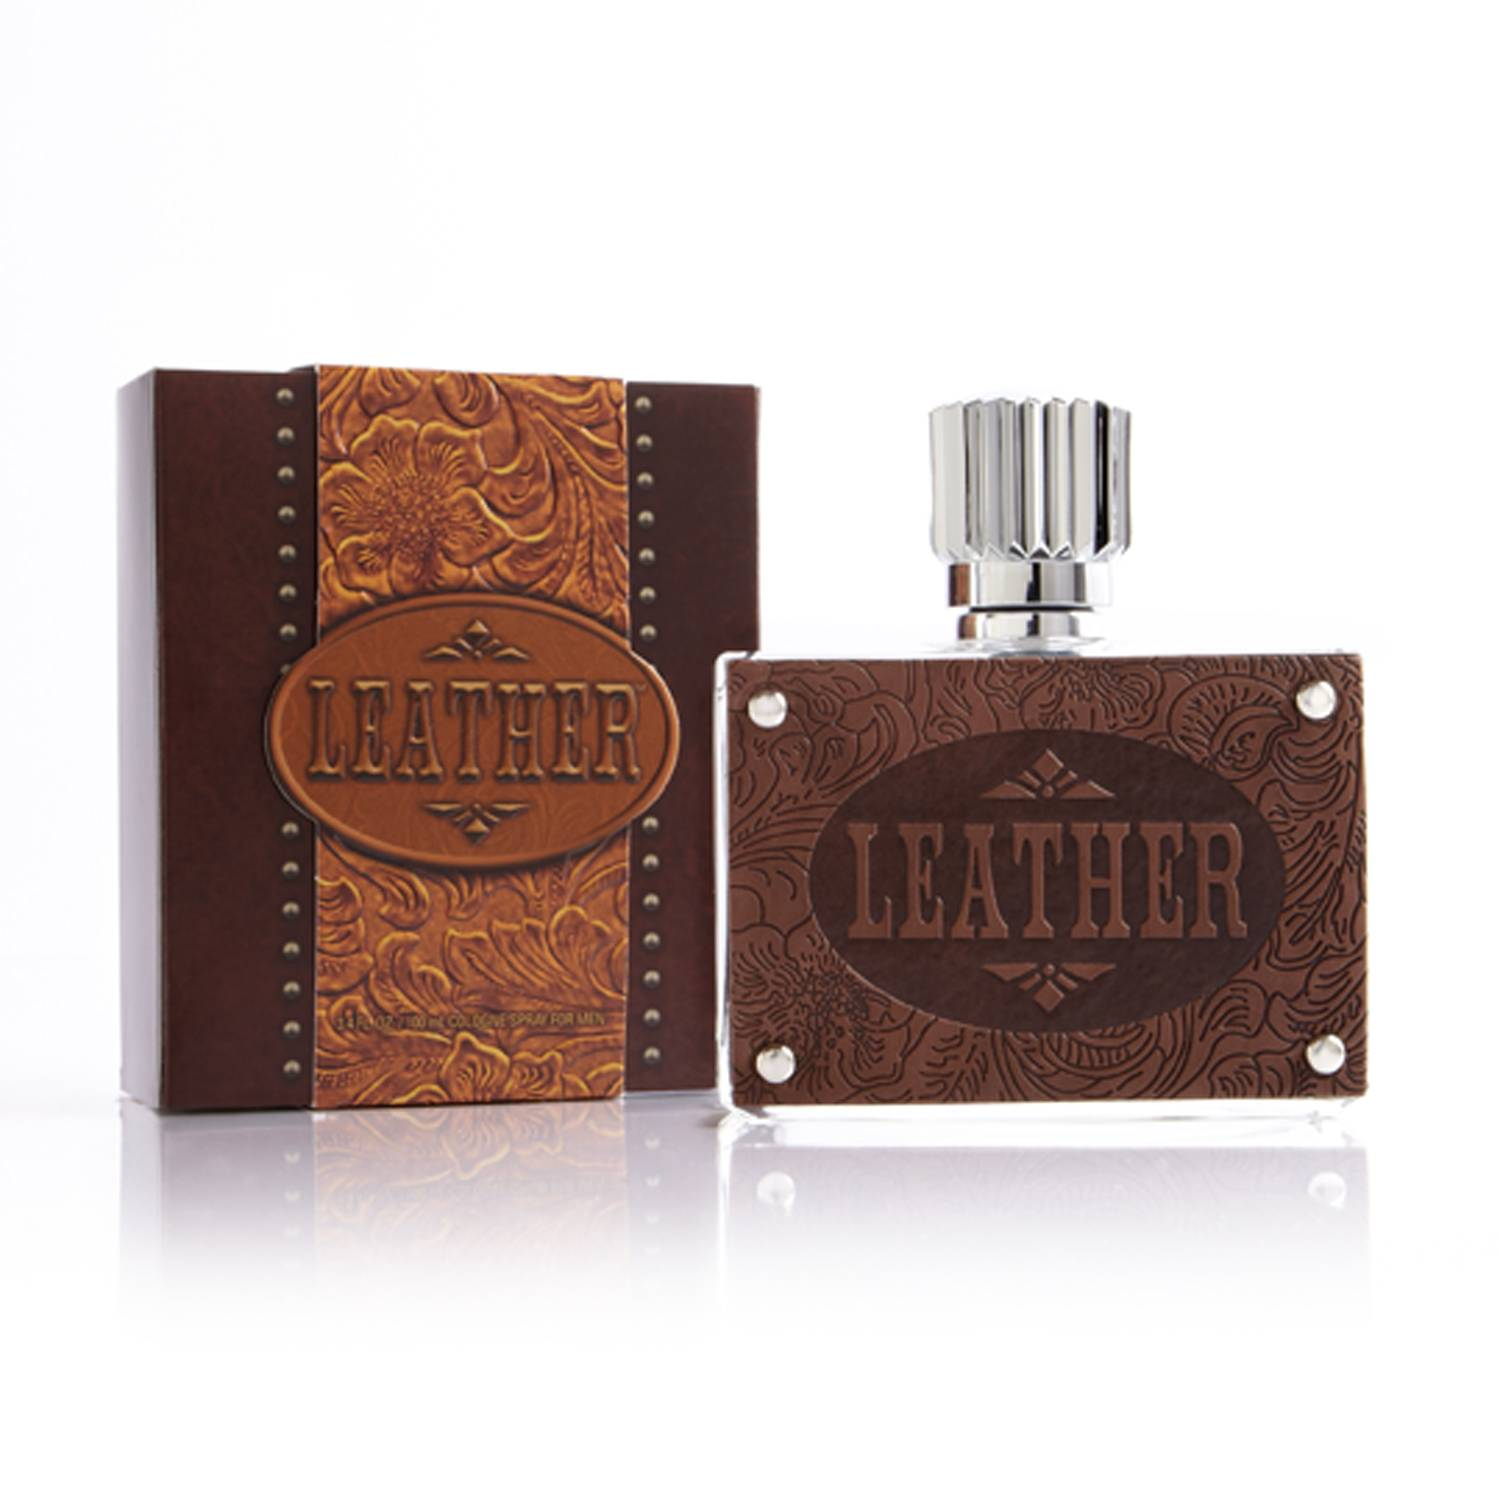 LEATHER Men's Cologne Spray